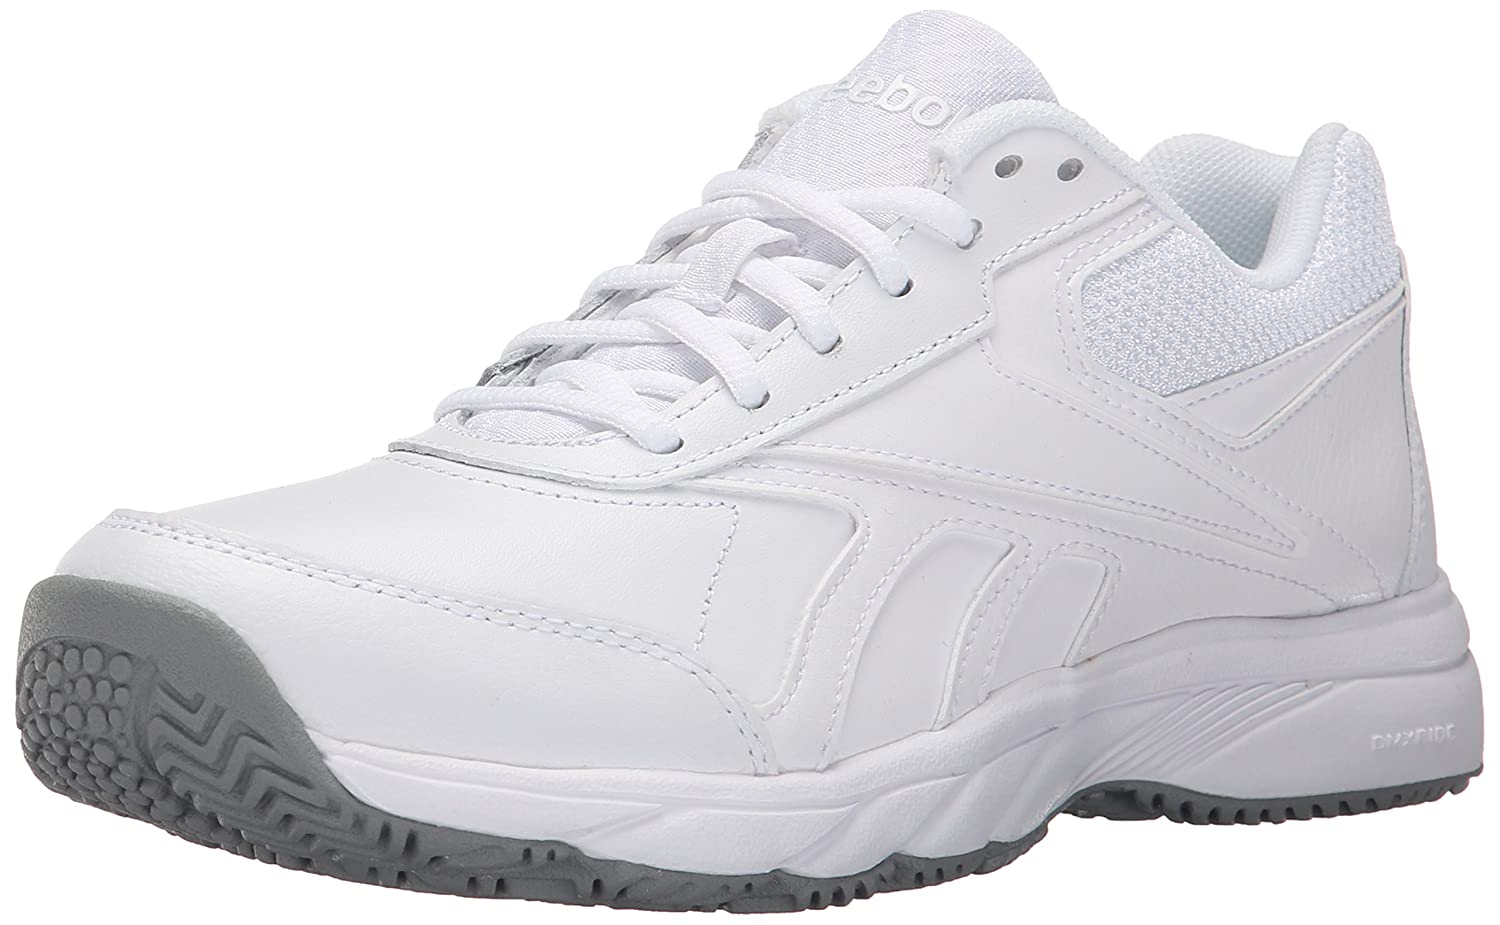 99163a88ba8b2e Reebok Women s Work N Cushion 2.0 Walking Shoe  Amazon.co.uk  Shoes   Bags